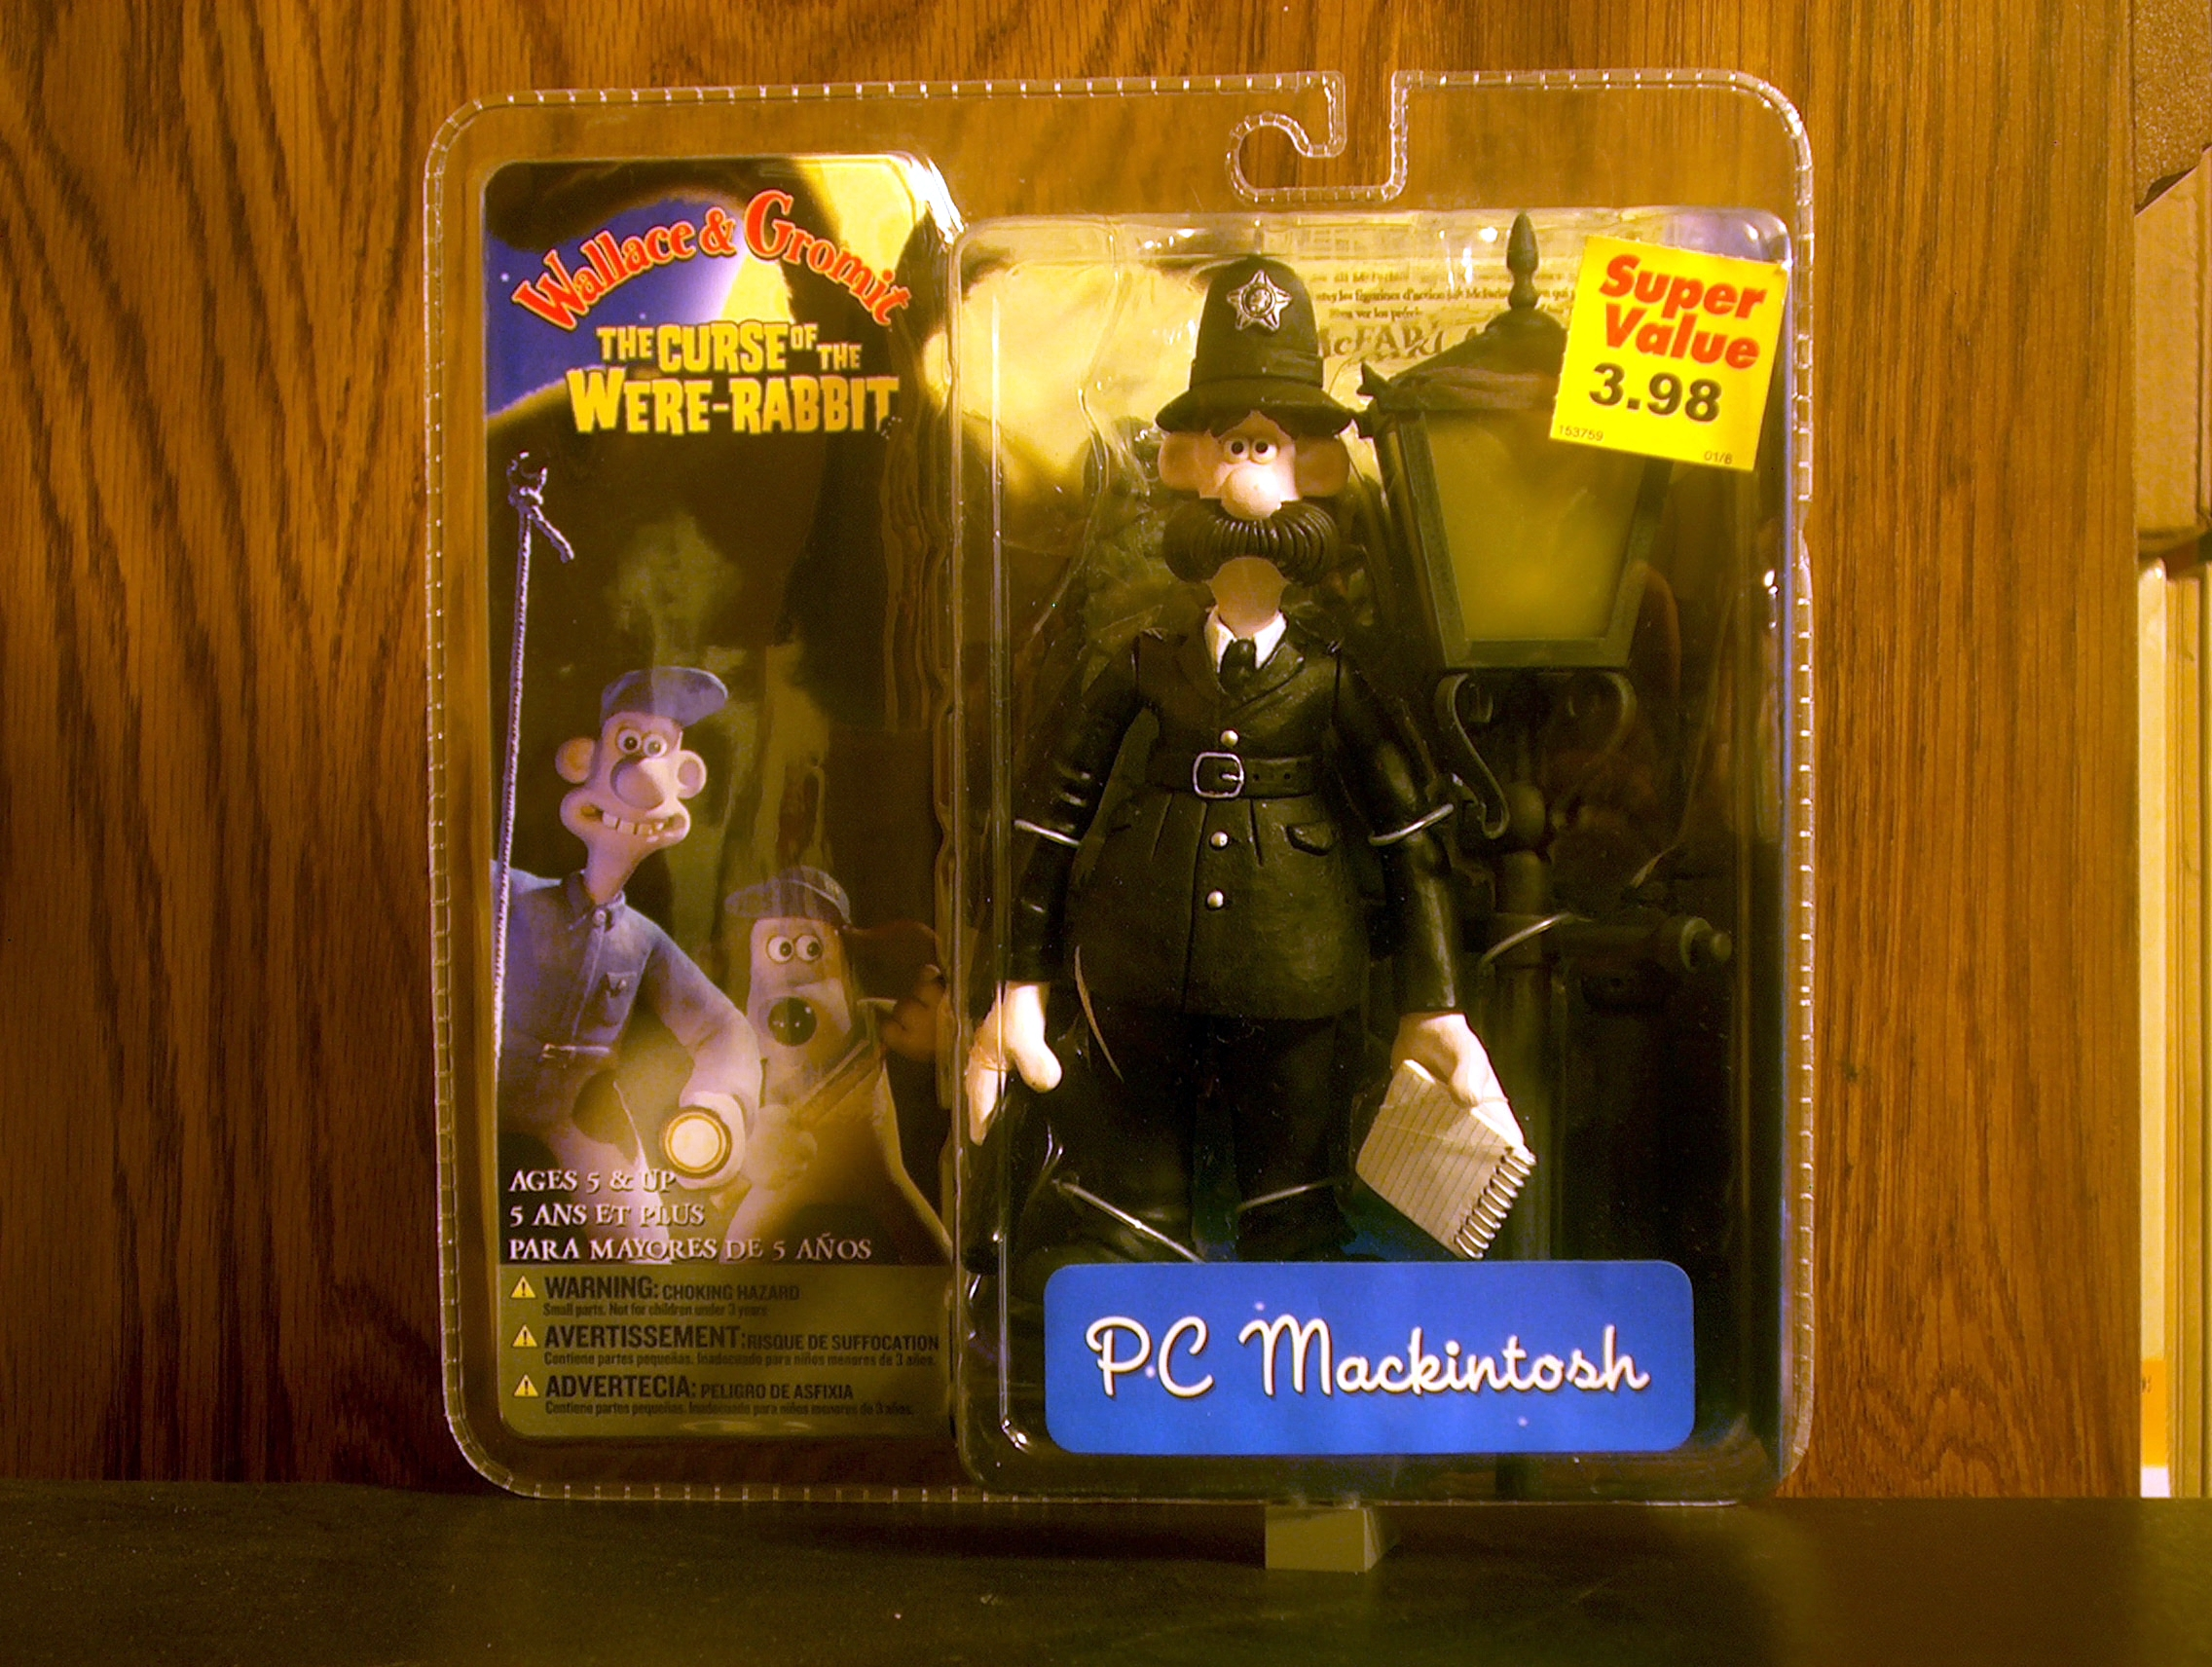 PC Mackintosh